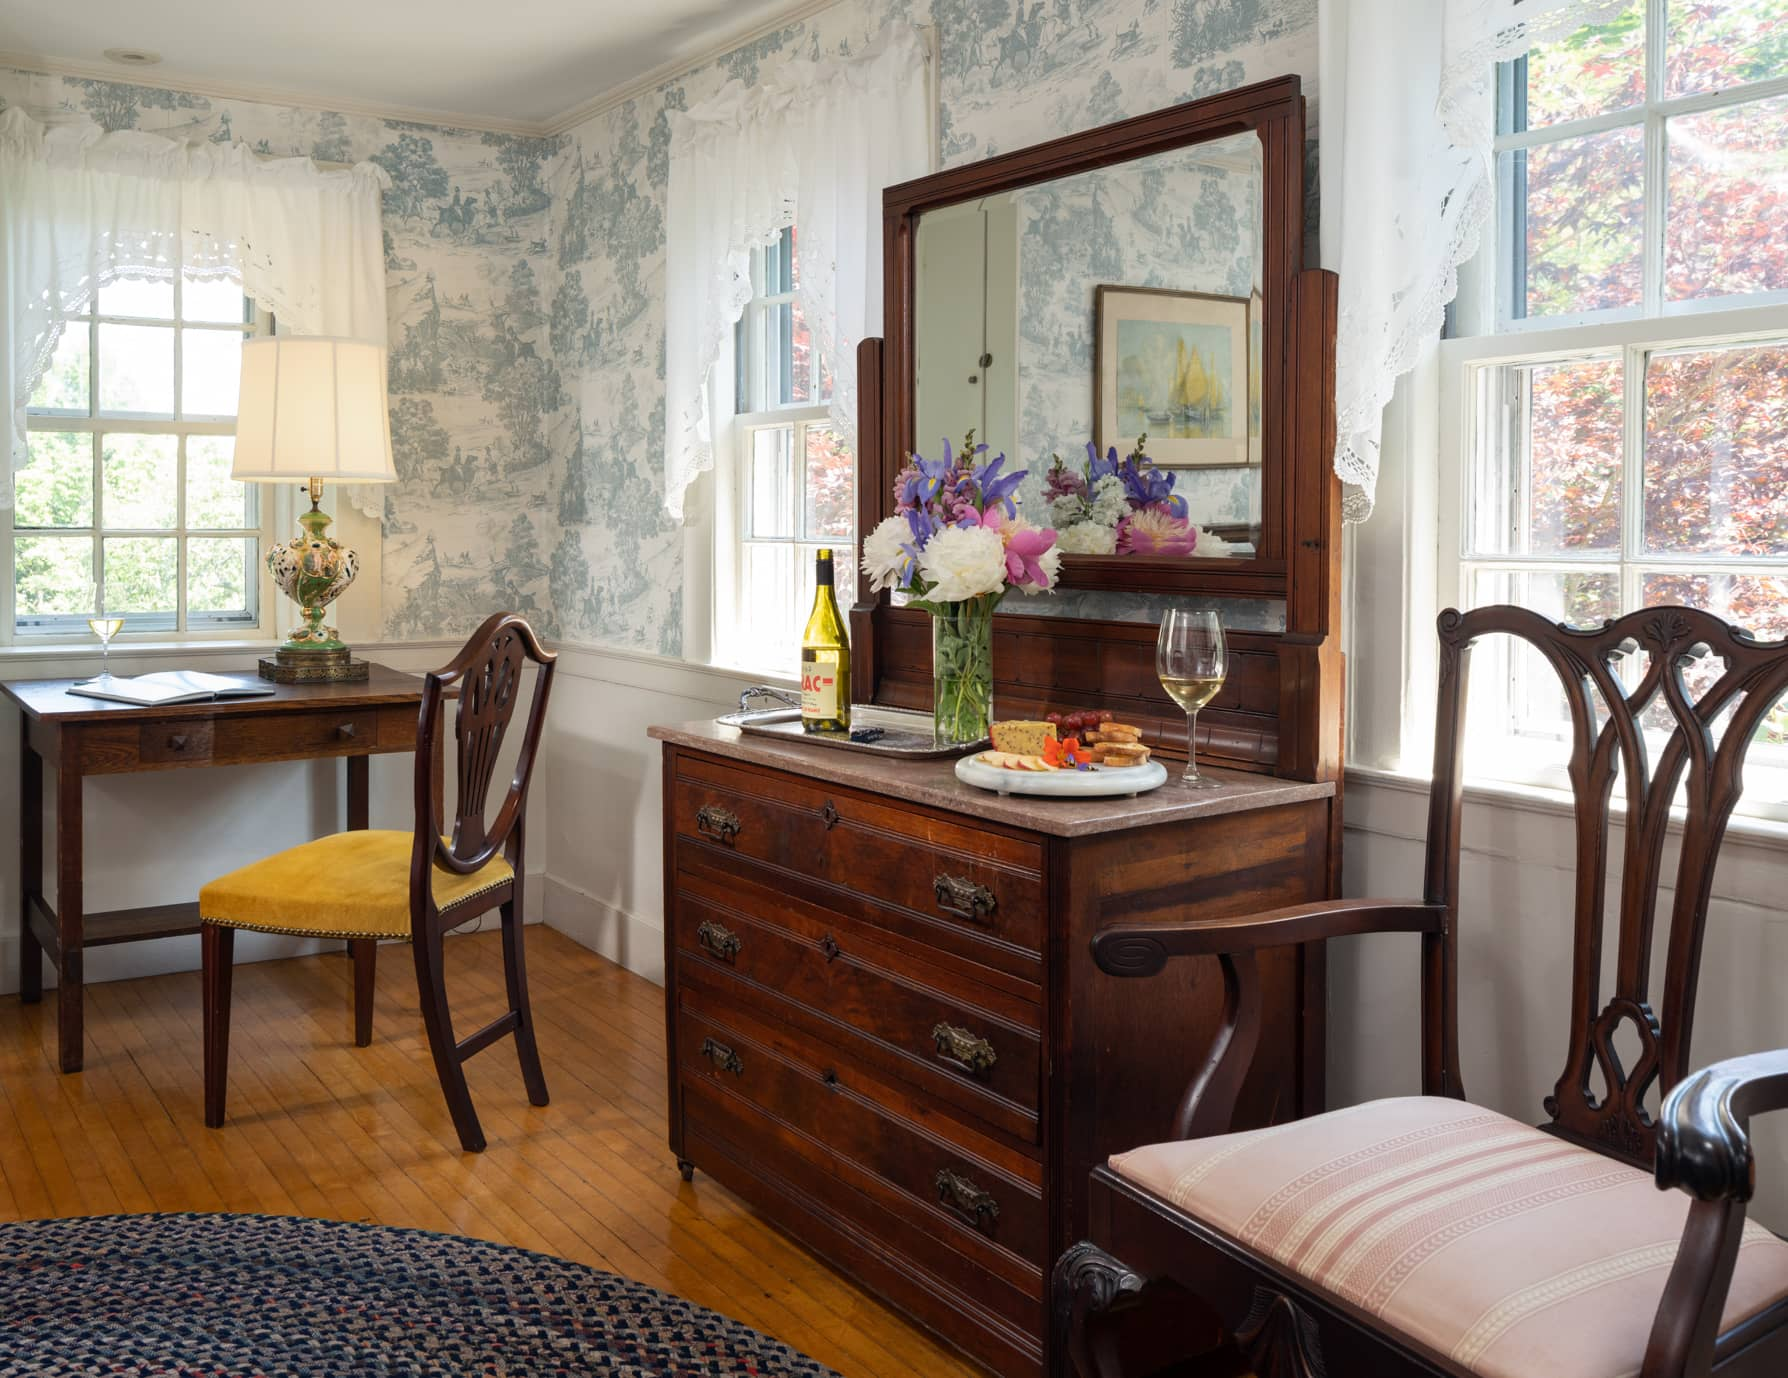 Room 6 writing desk and a cabinet with a mirror set against a wall with large windows